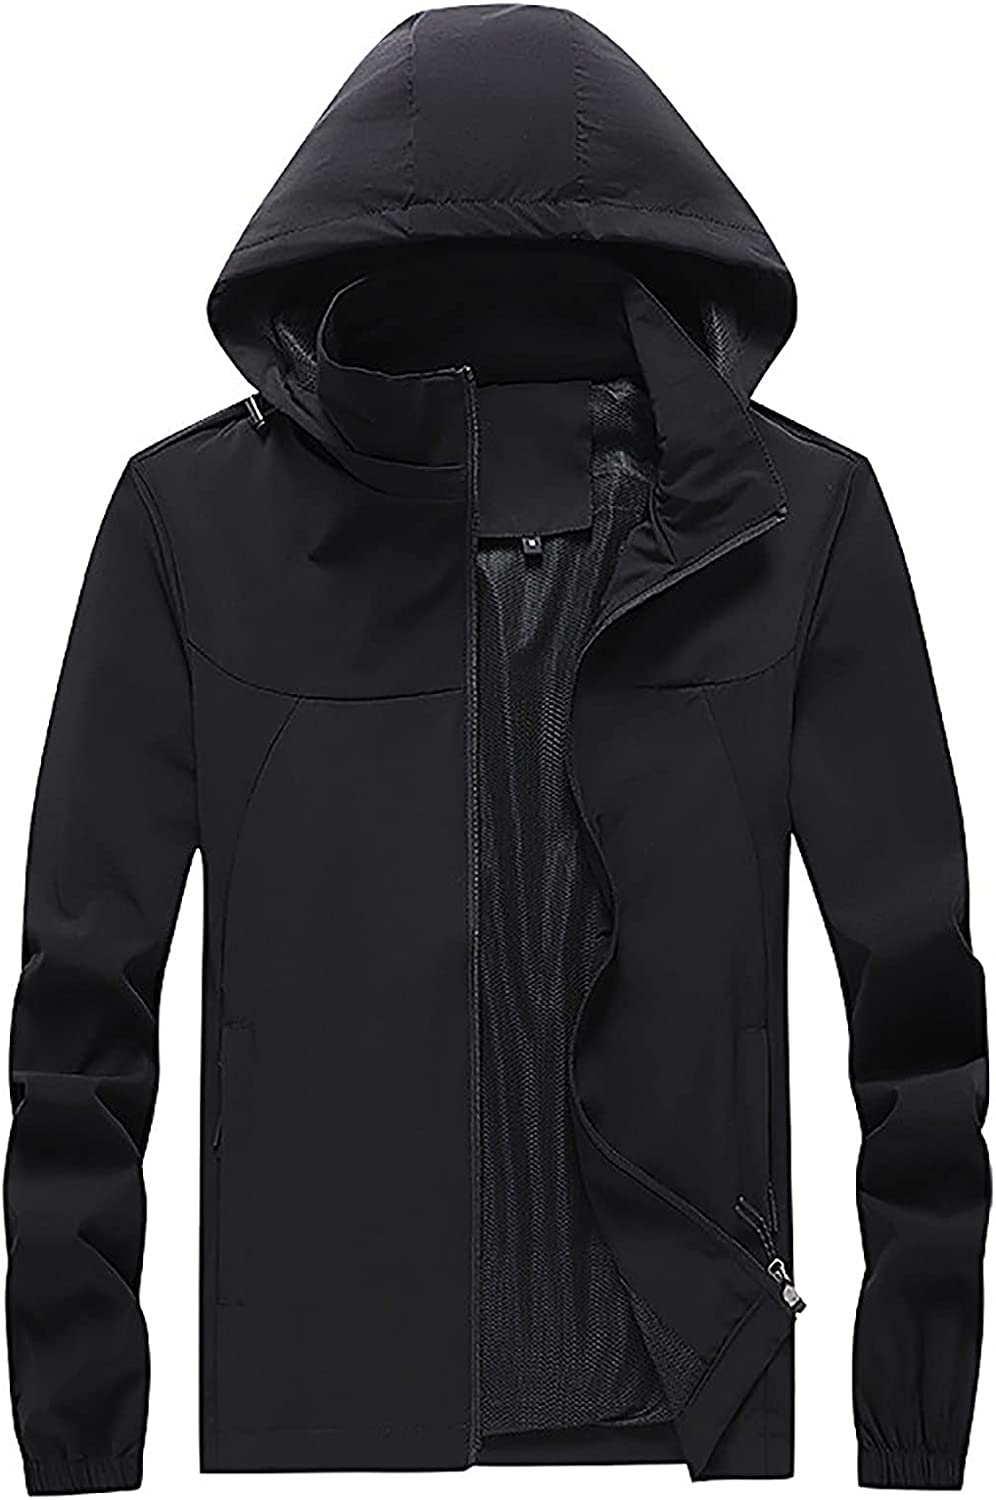 2021 Fashion Hooded Coat for Men's Waterproof Coat Long Sleeve Zipper Solid Color Loose Plus Size Outdoor Jacket Trench